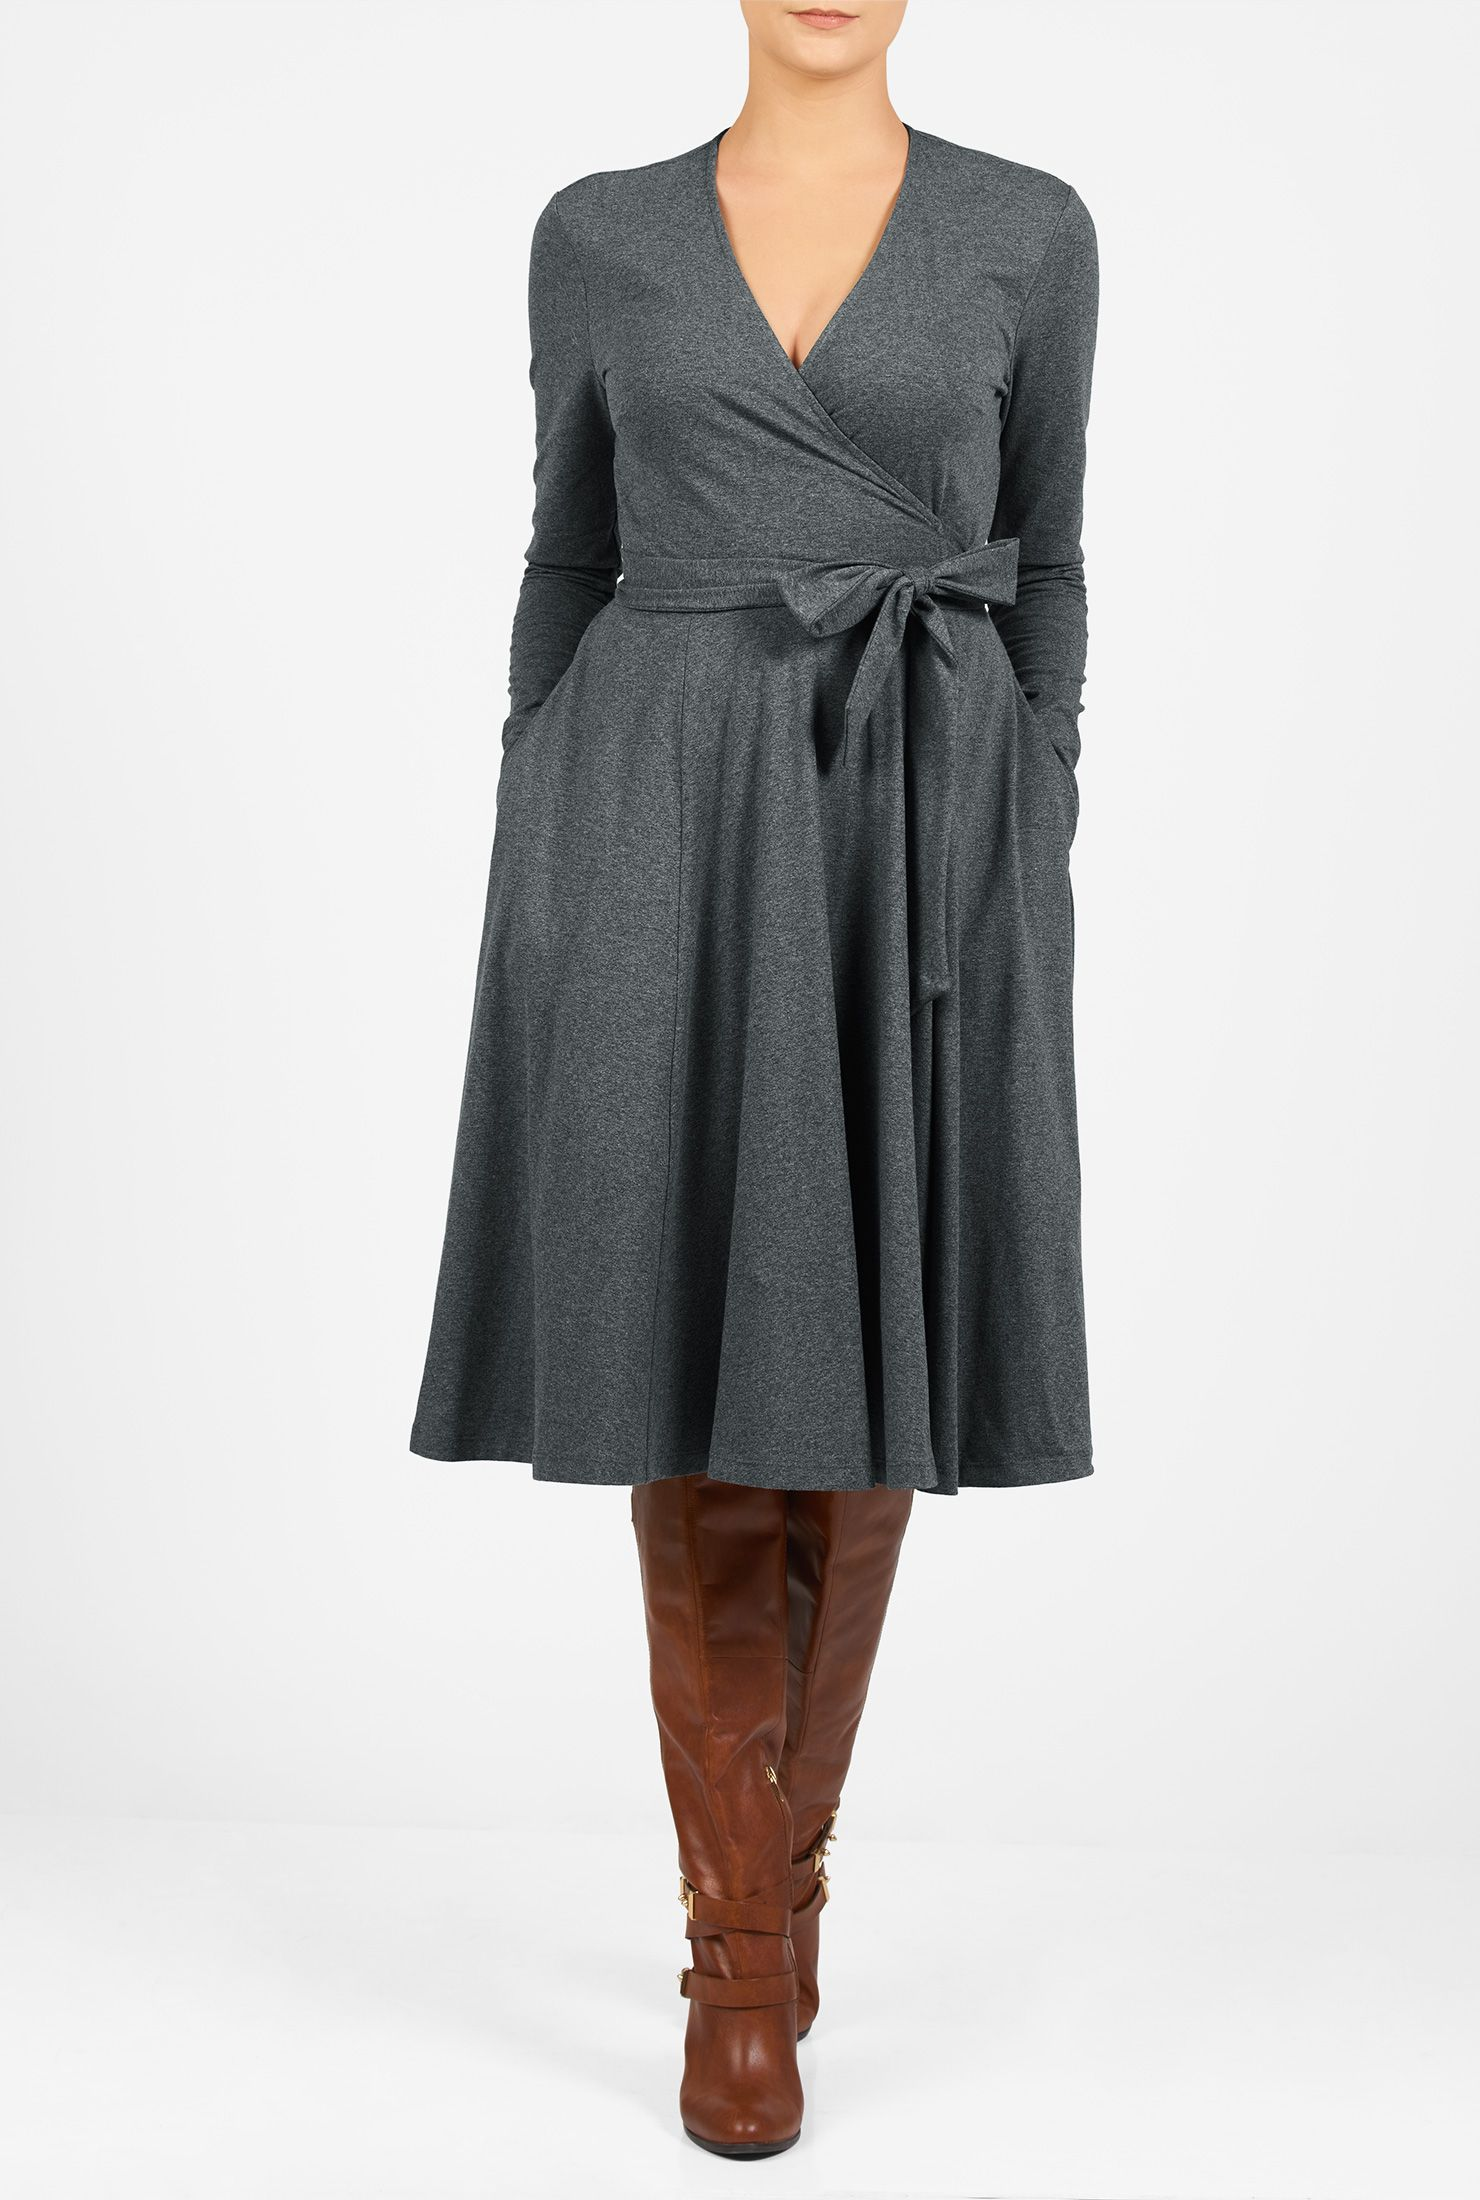 Our Cotton Jersey Knit Wrap Dress Is Styled With A Surplice V Neck And A Cross Over Skirt Affordable Fashion Clothes Tall Girl Dresses Clothing For Tall Women [ 2200 x 1480 Pixel ]